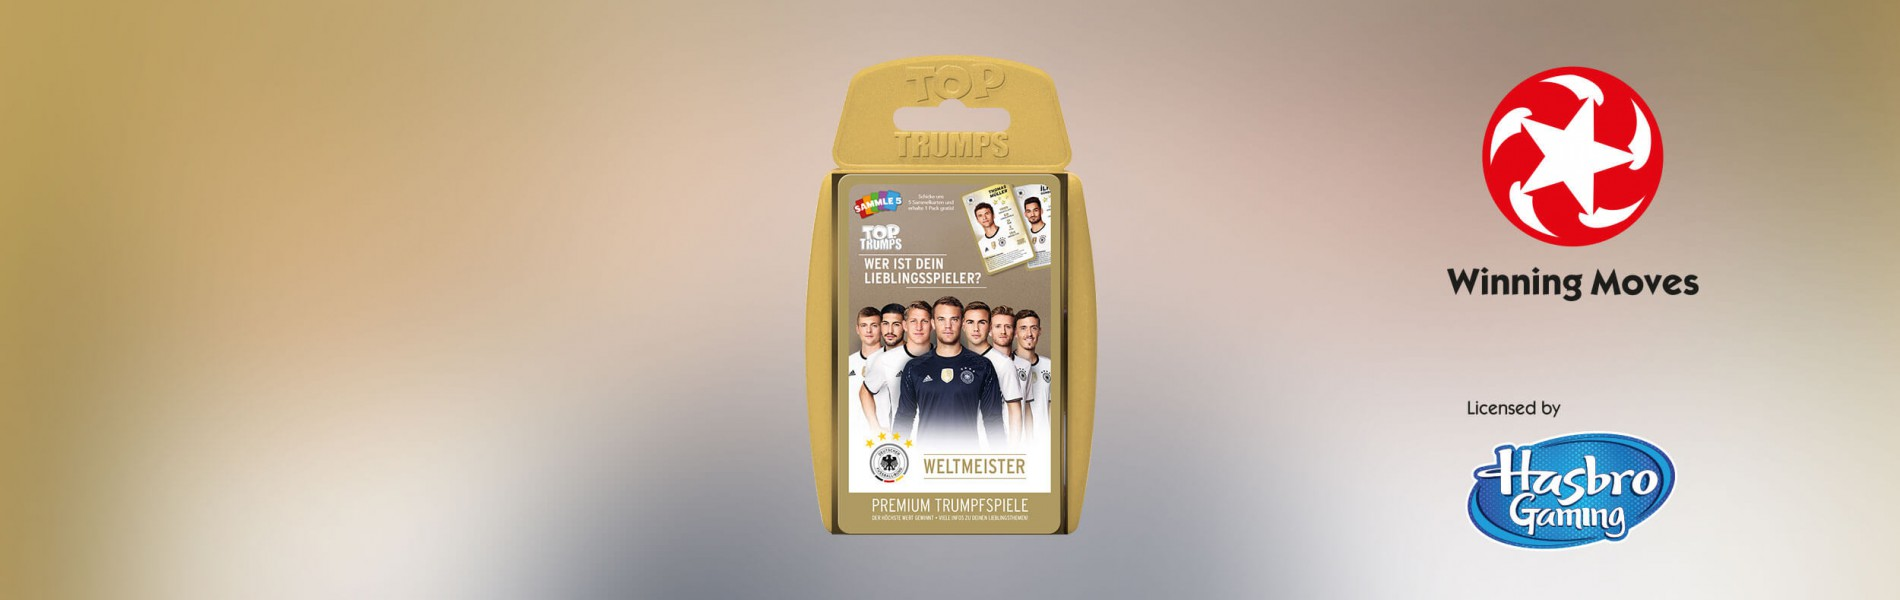 Top Trumps DFB Weltmeister